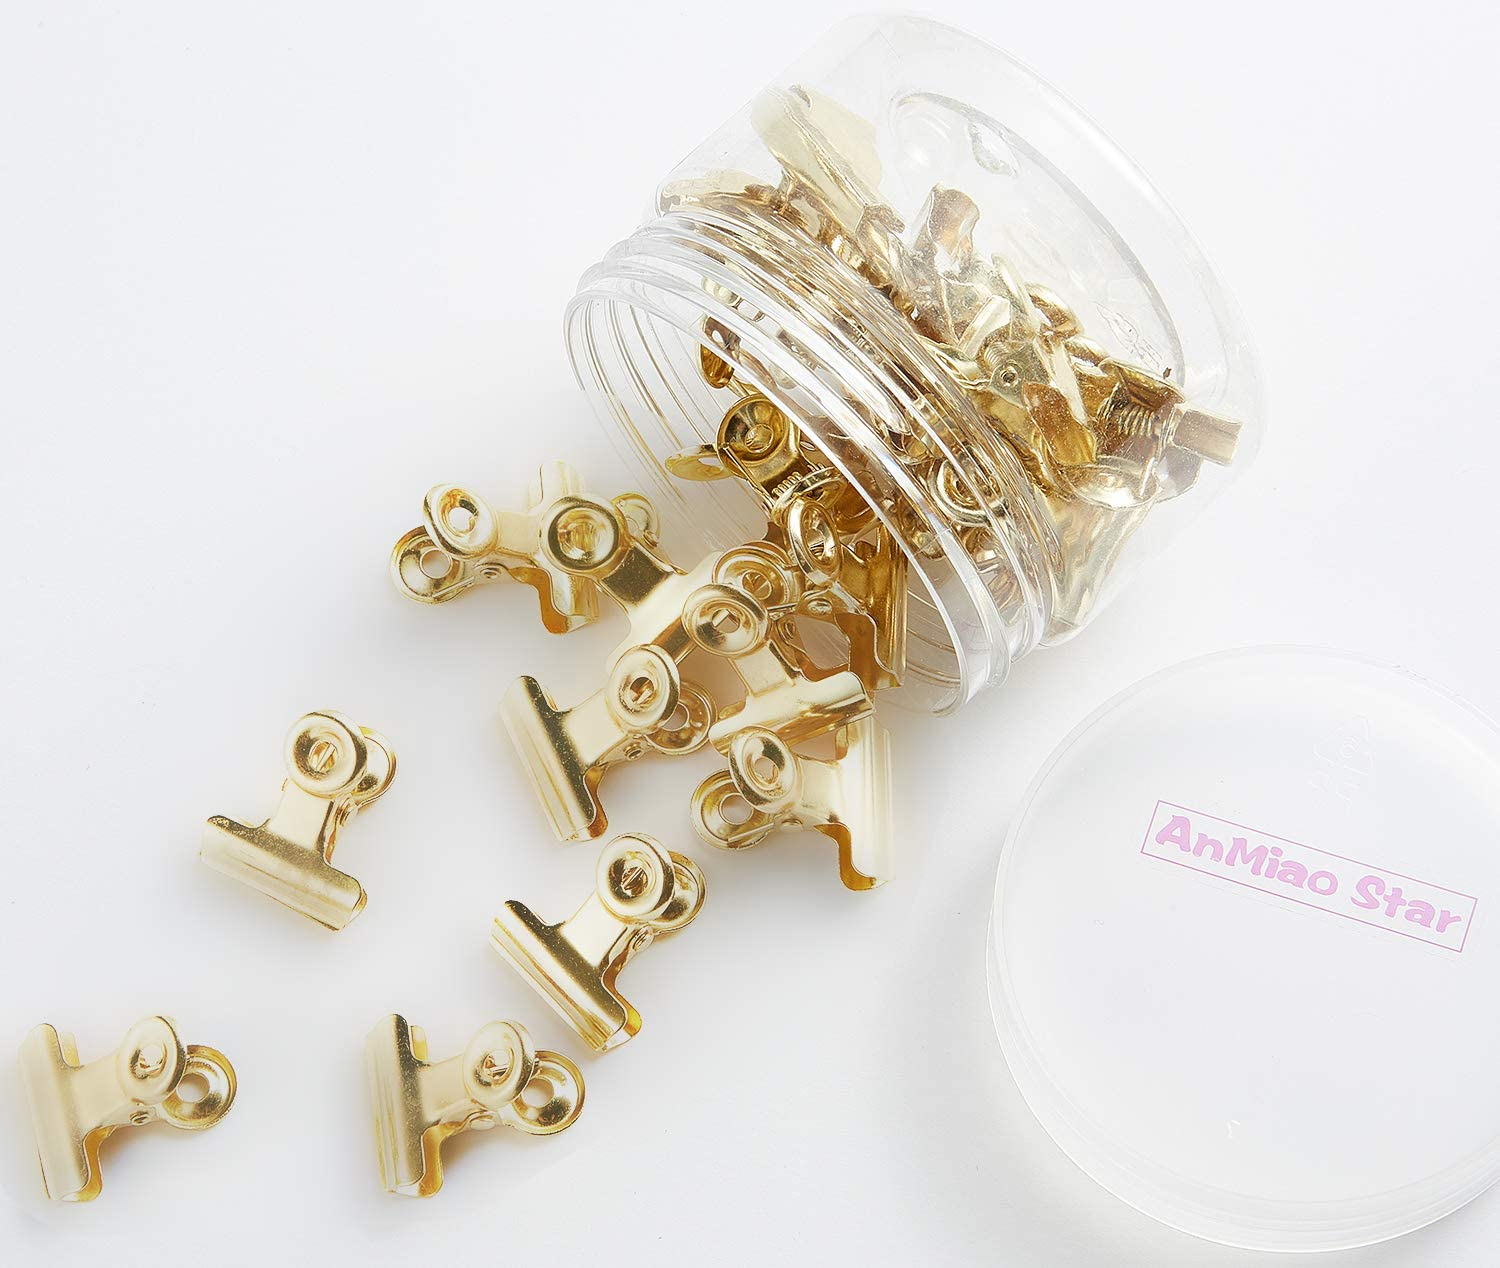 AnMiao Star 7/8 Inch Metal Bulldog Clips, Hinge Clips for Documents, Files, Pictures, Home Office Supplies, Pack of 30 (Gold)